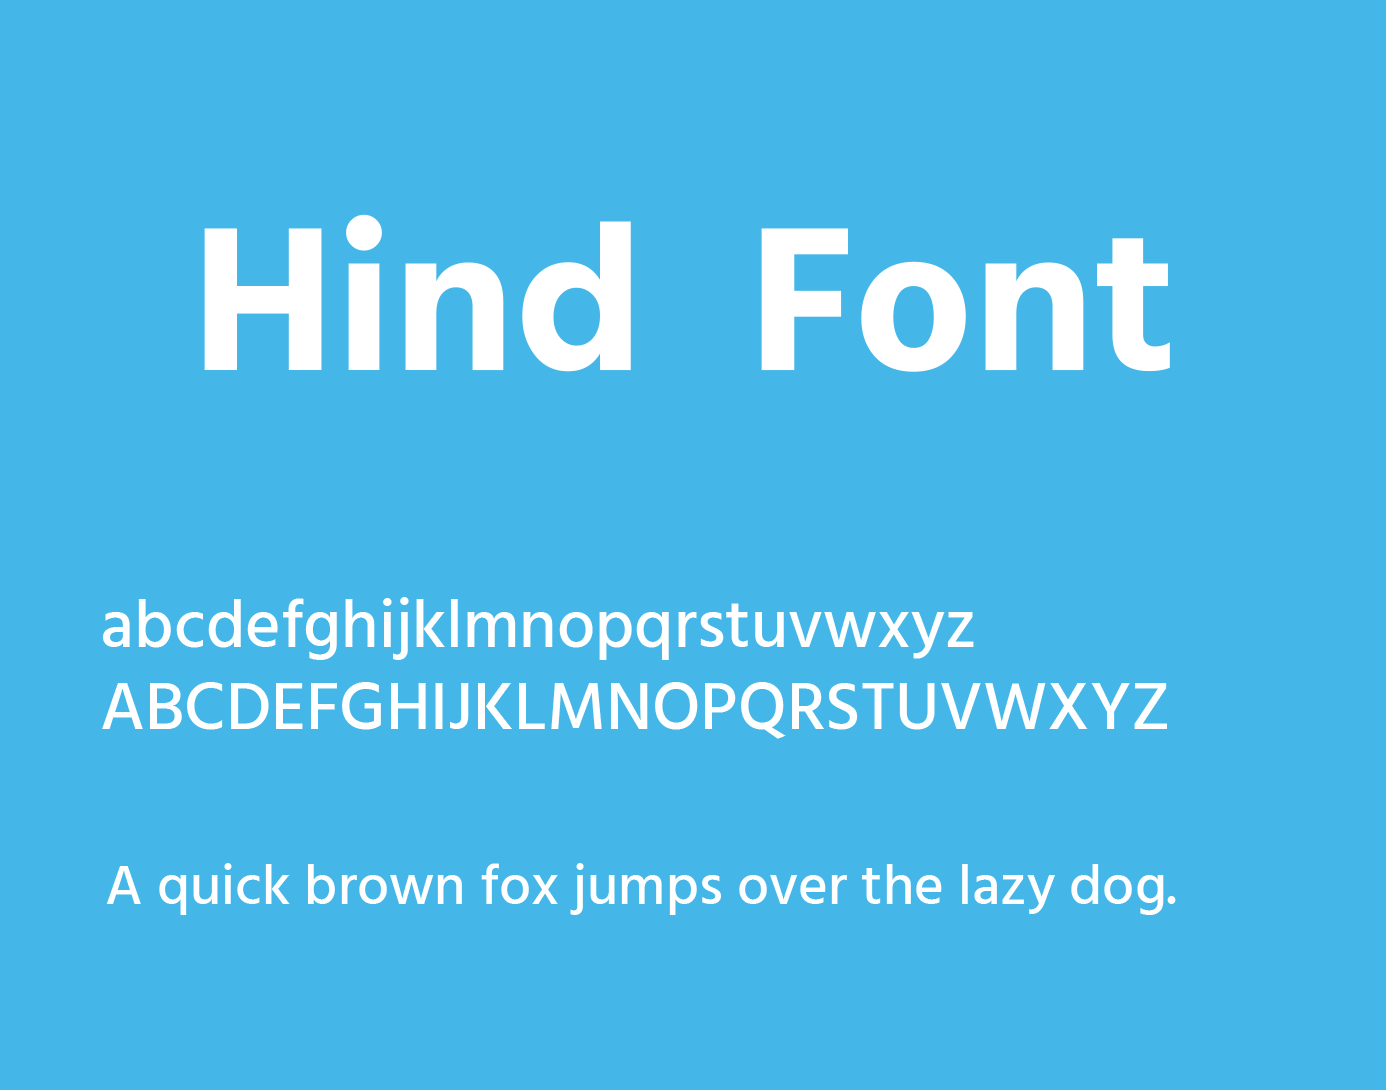 hind-font-styles